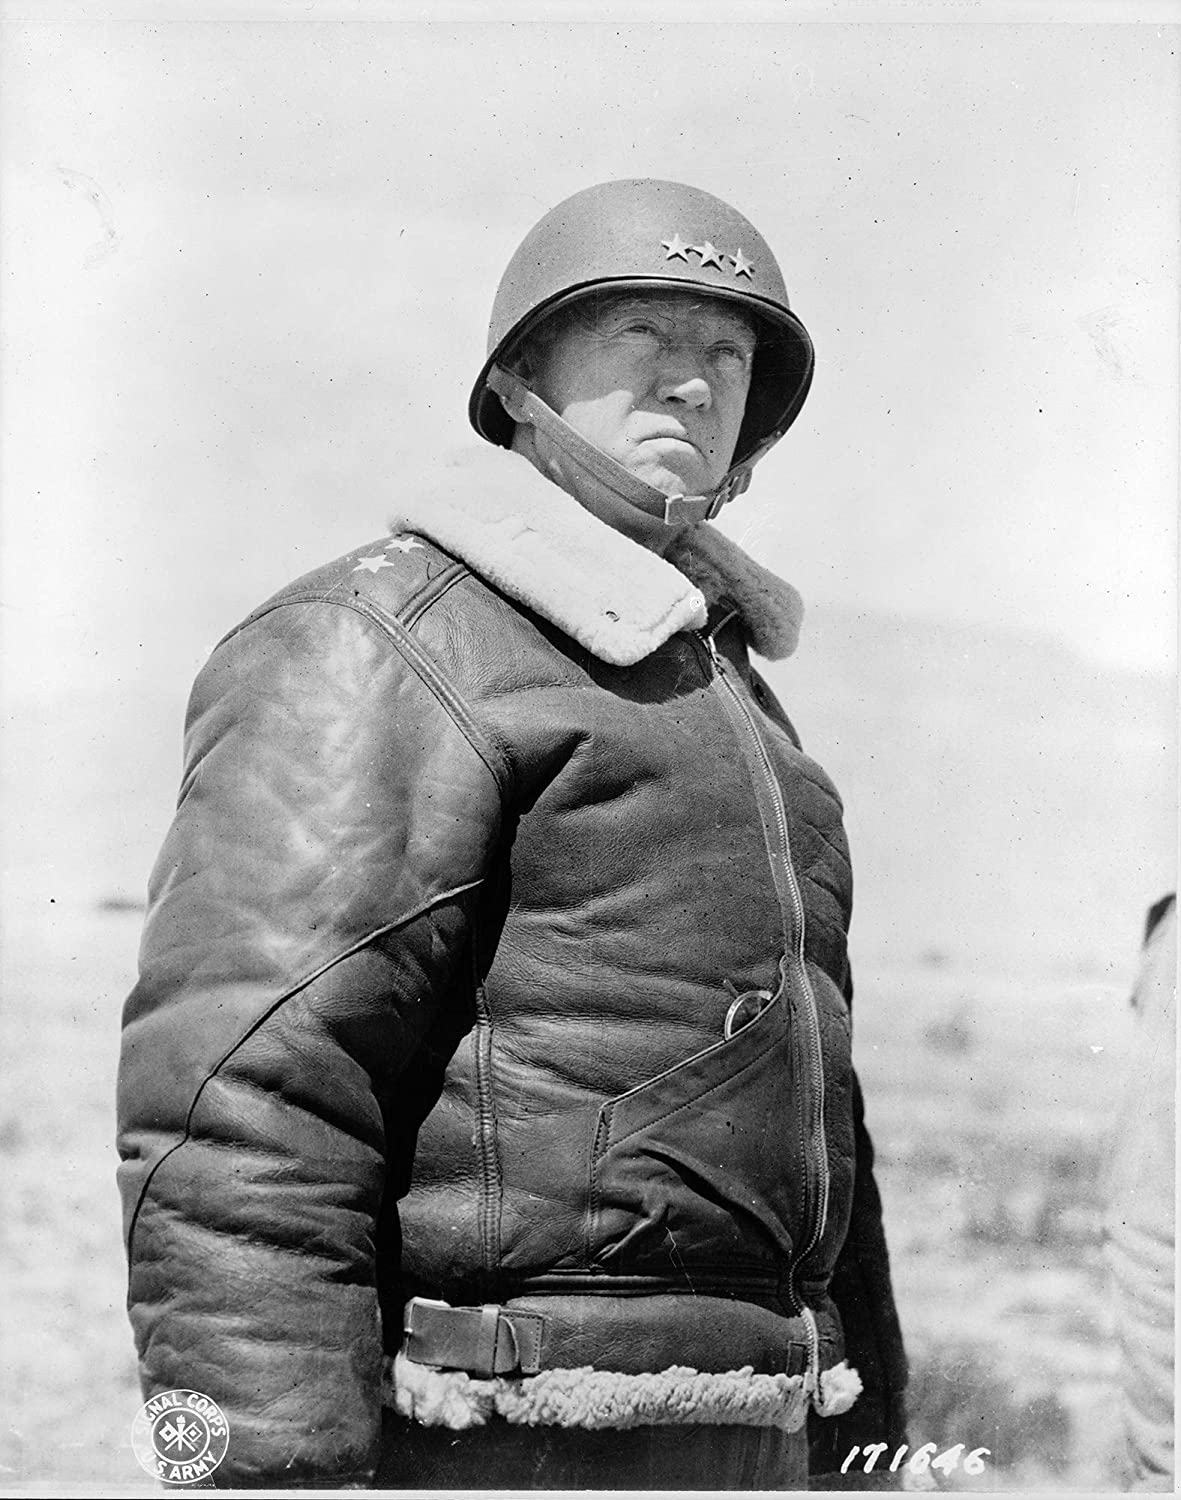 4 x 6 General George Patton Photograph - Gloss Historical Artwork from 1943 -